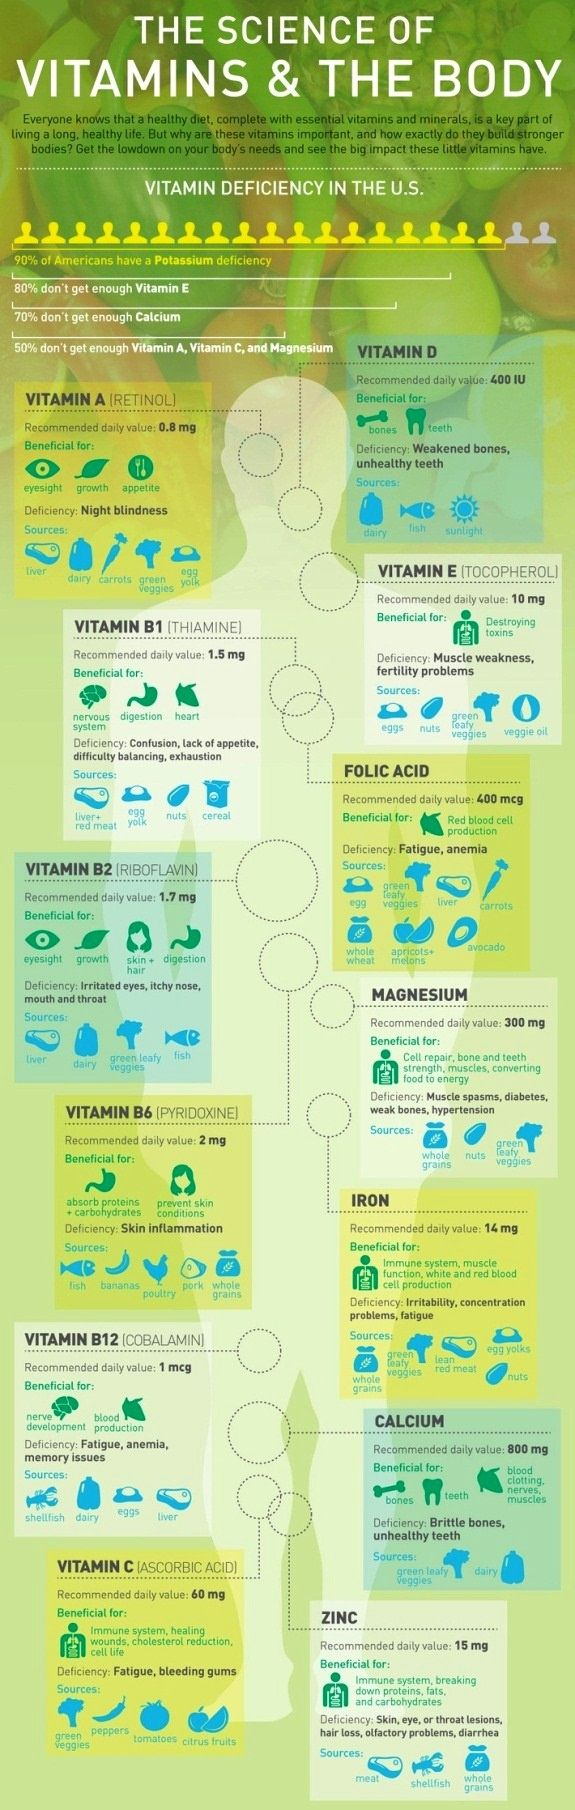 The Science of Vitamins and the Body #vitamins